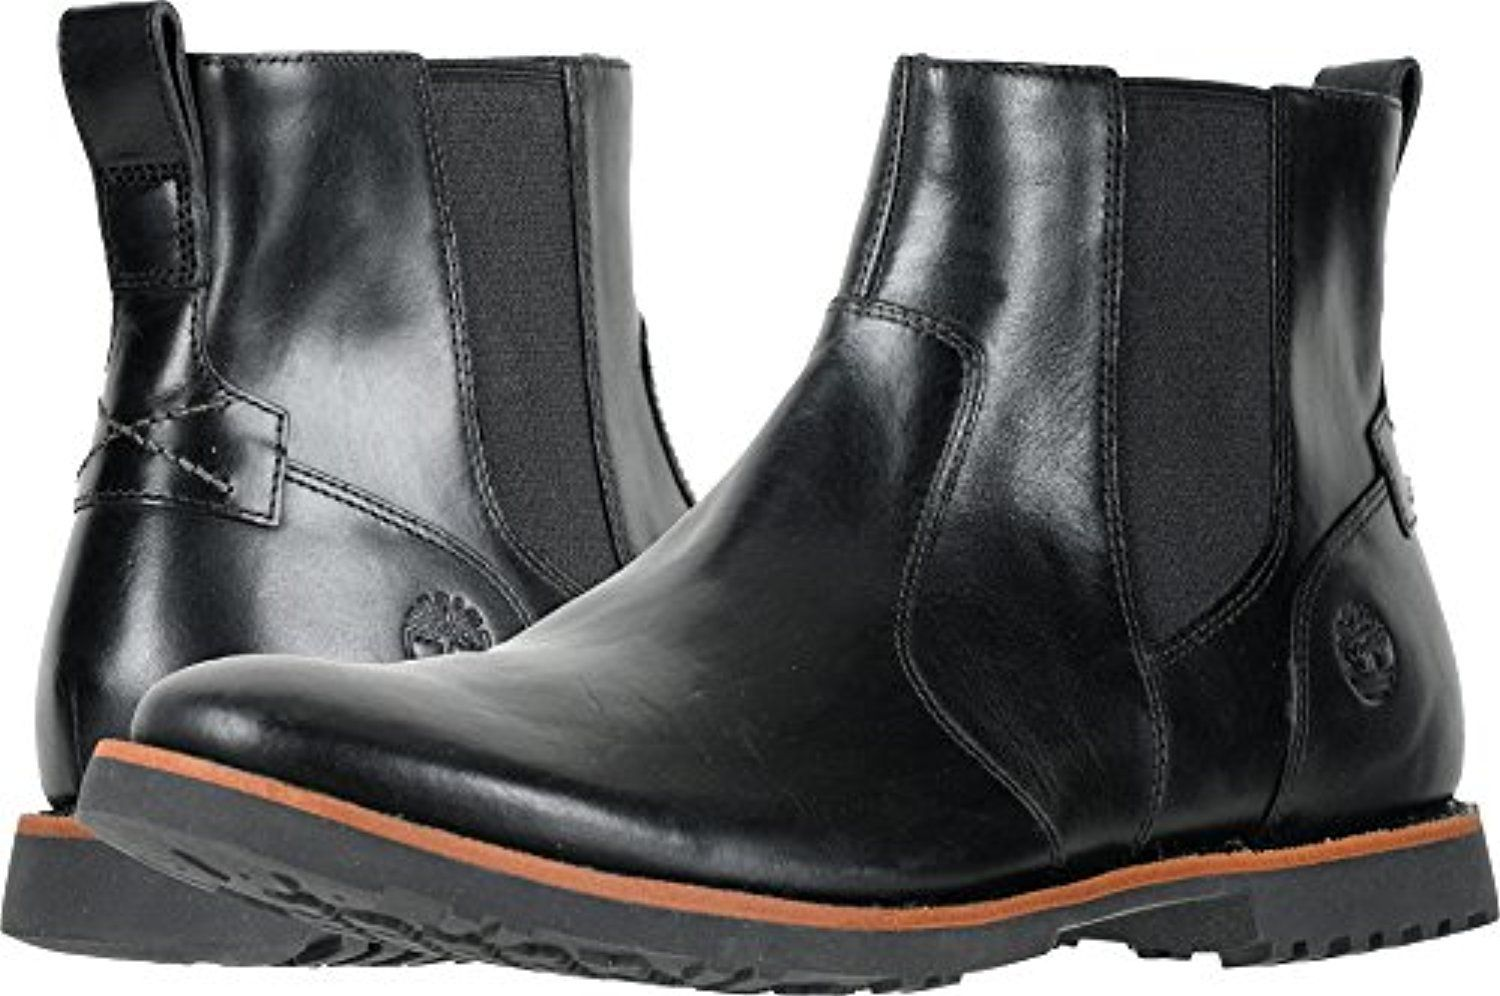 0e60772a7234ef Timberland Mens Kendrick Chelsea Boots Black Old Harness 9.5 M ...